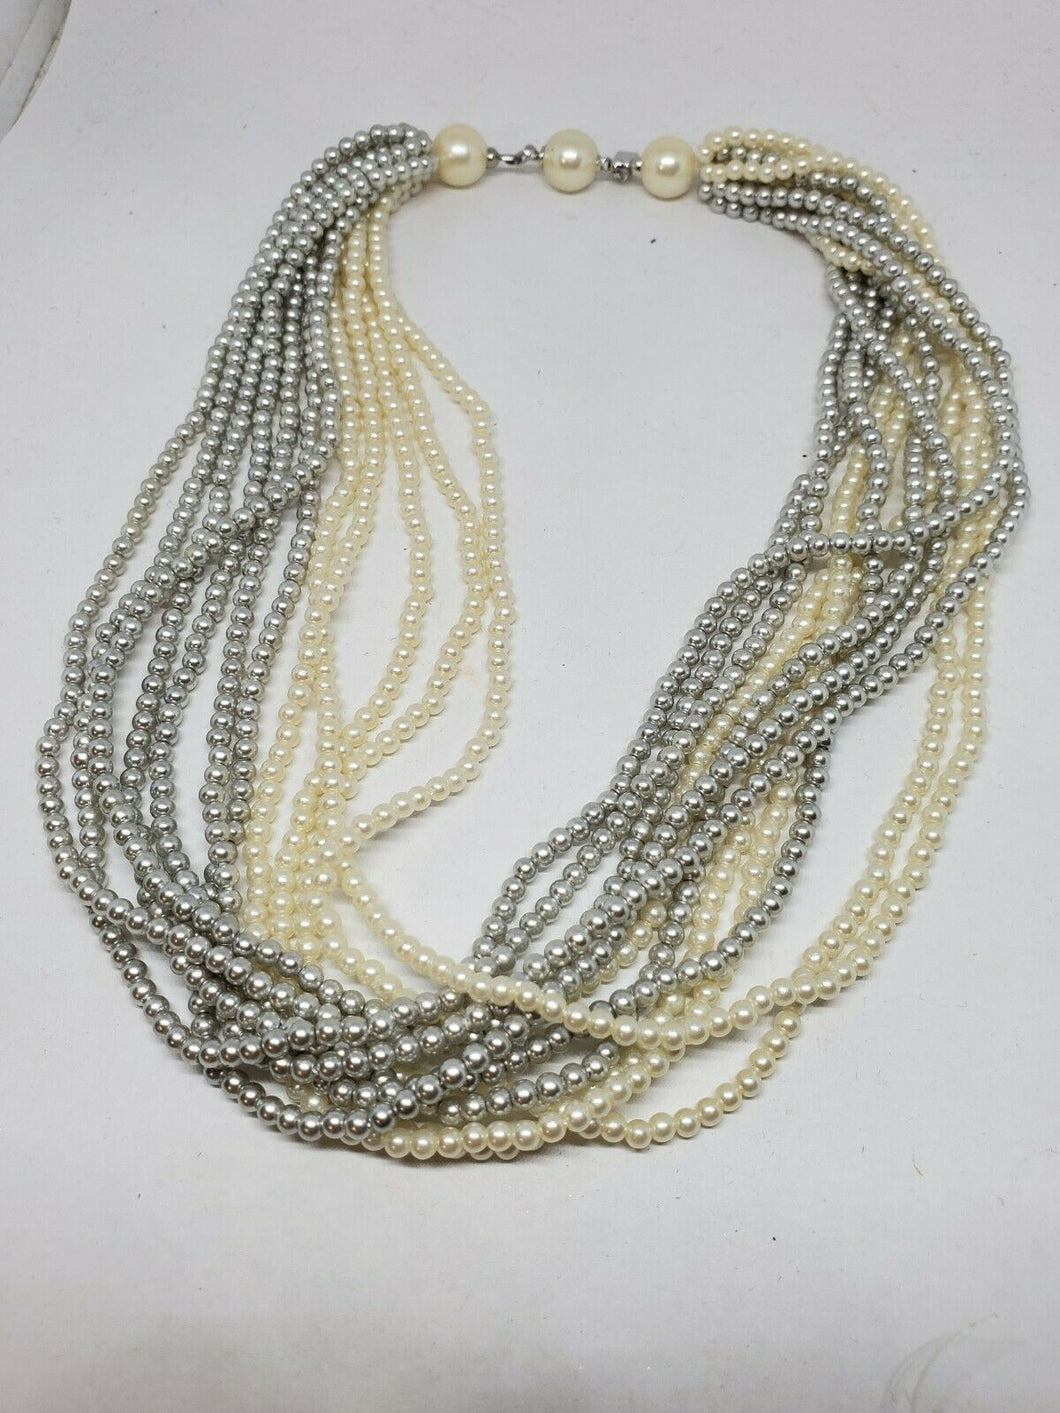 Vintage Marvella Silver And Cream Multistrand Faux Pearl Necklace 16.5